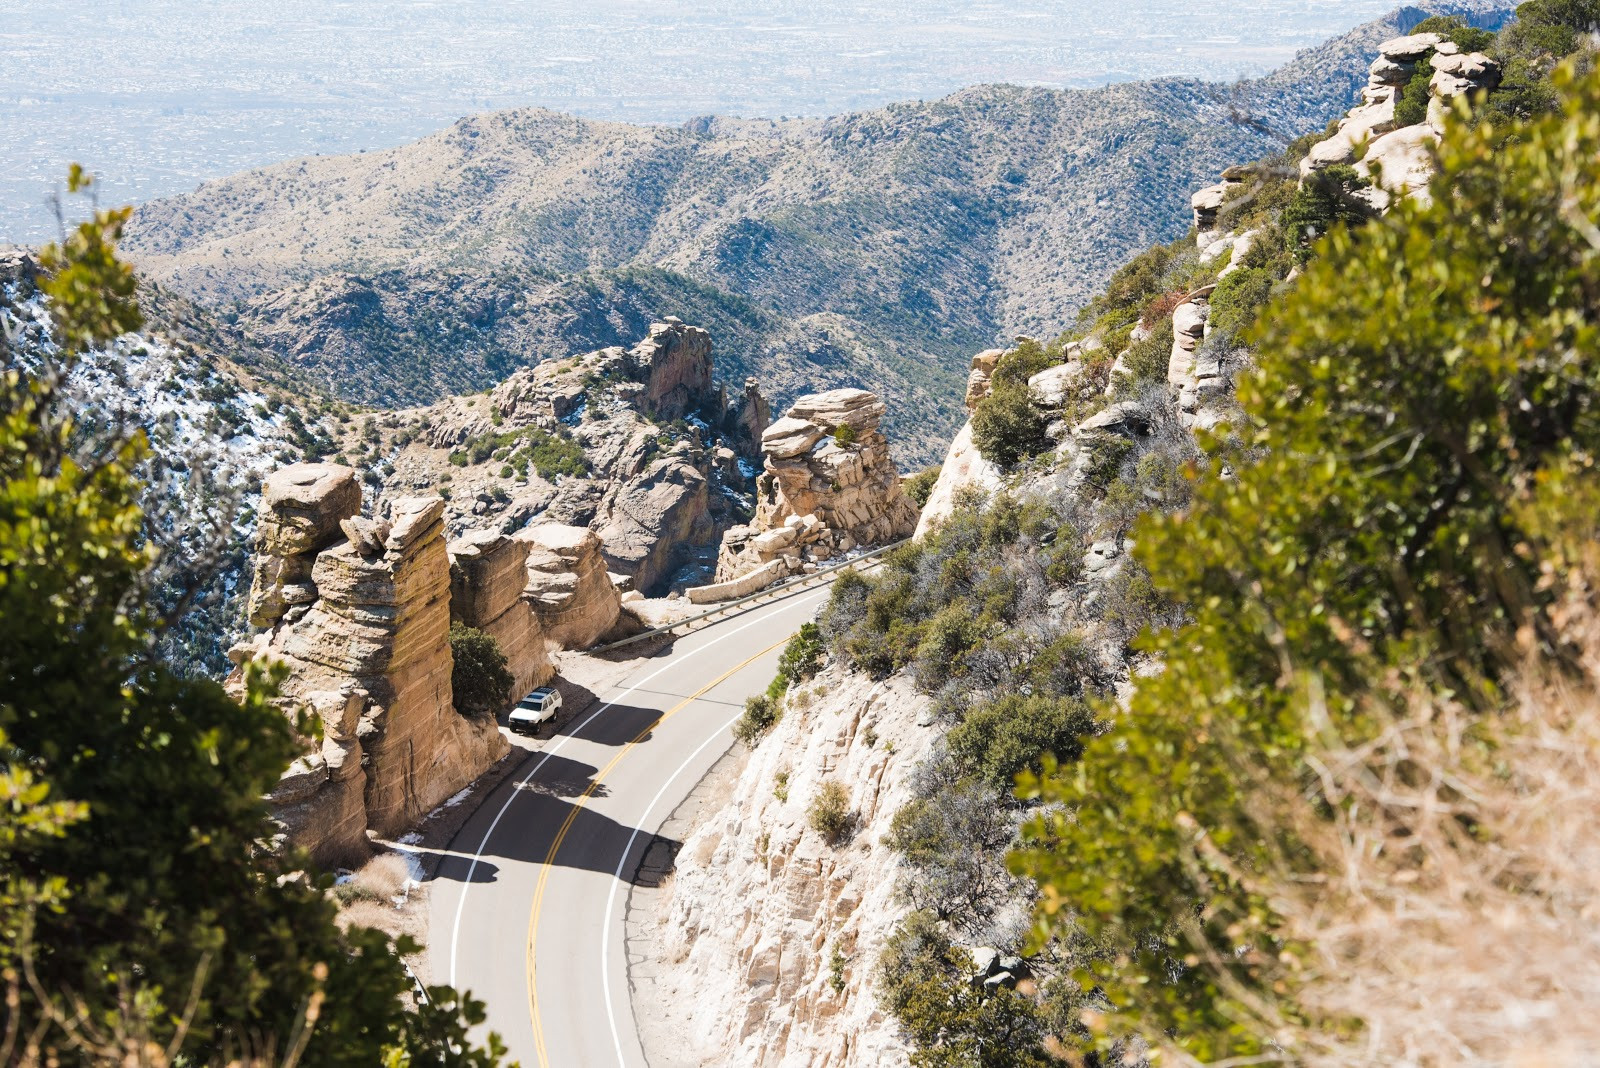 Hoodoo formations on the road while cycling Mt. Lemmon